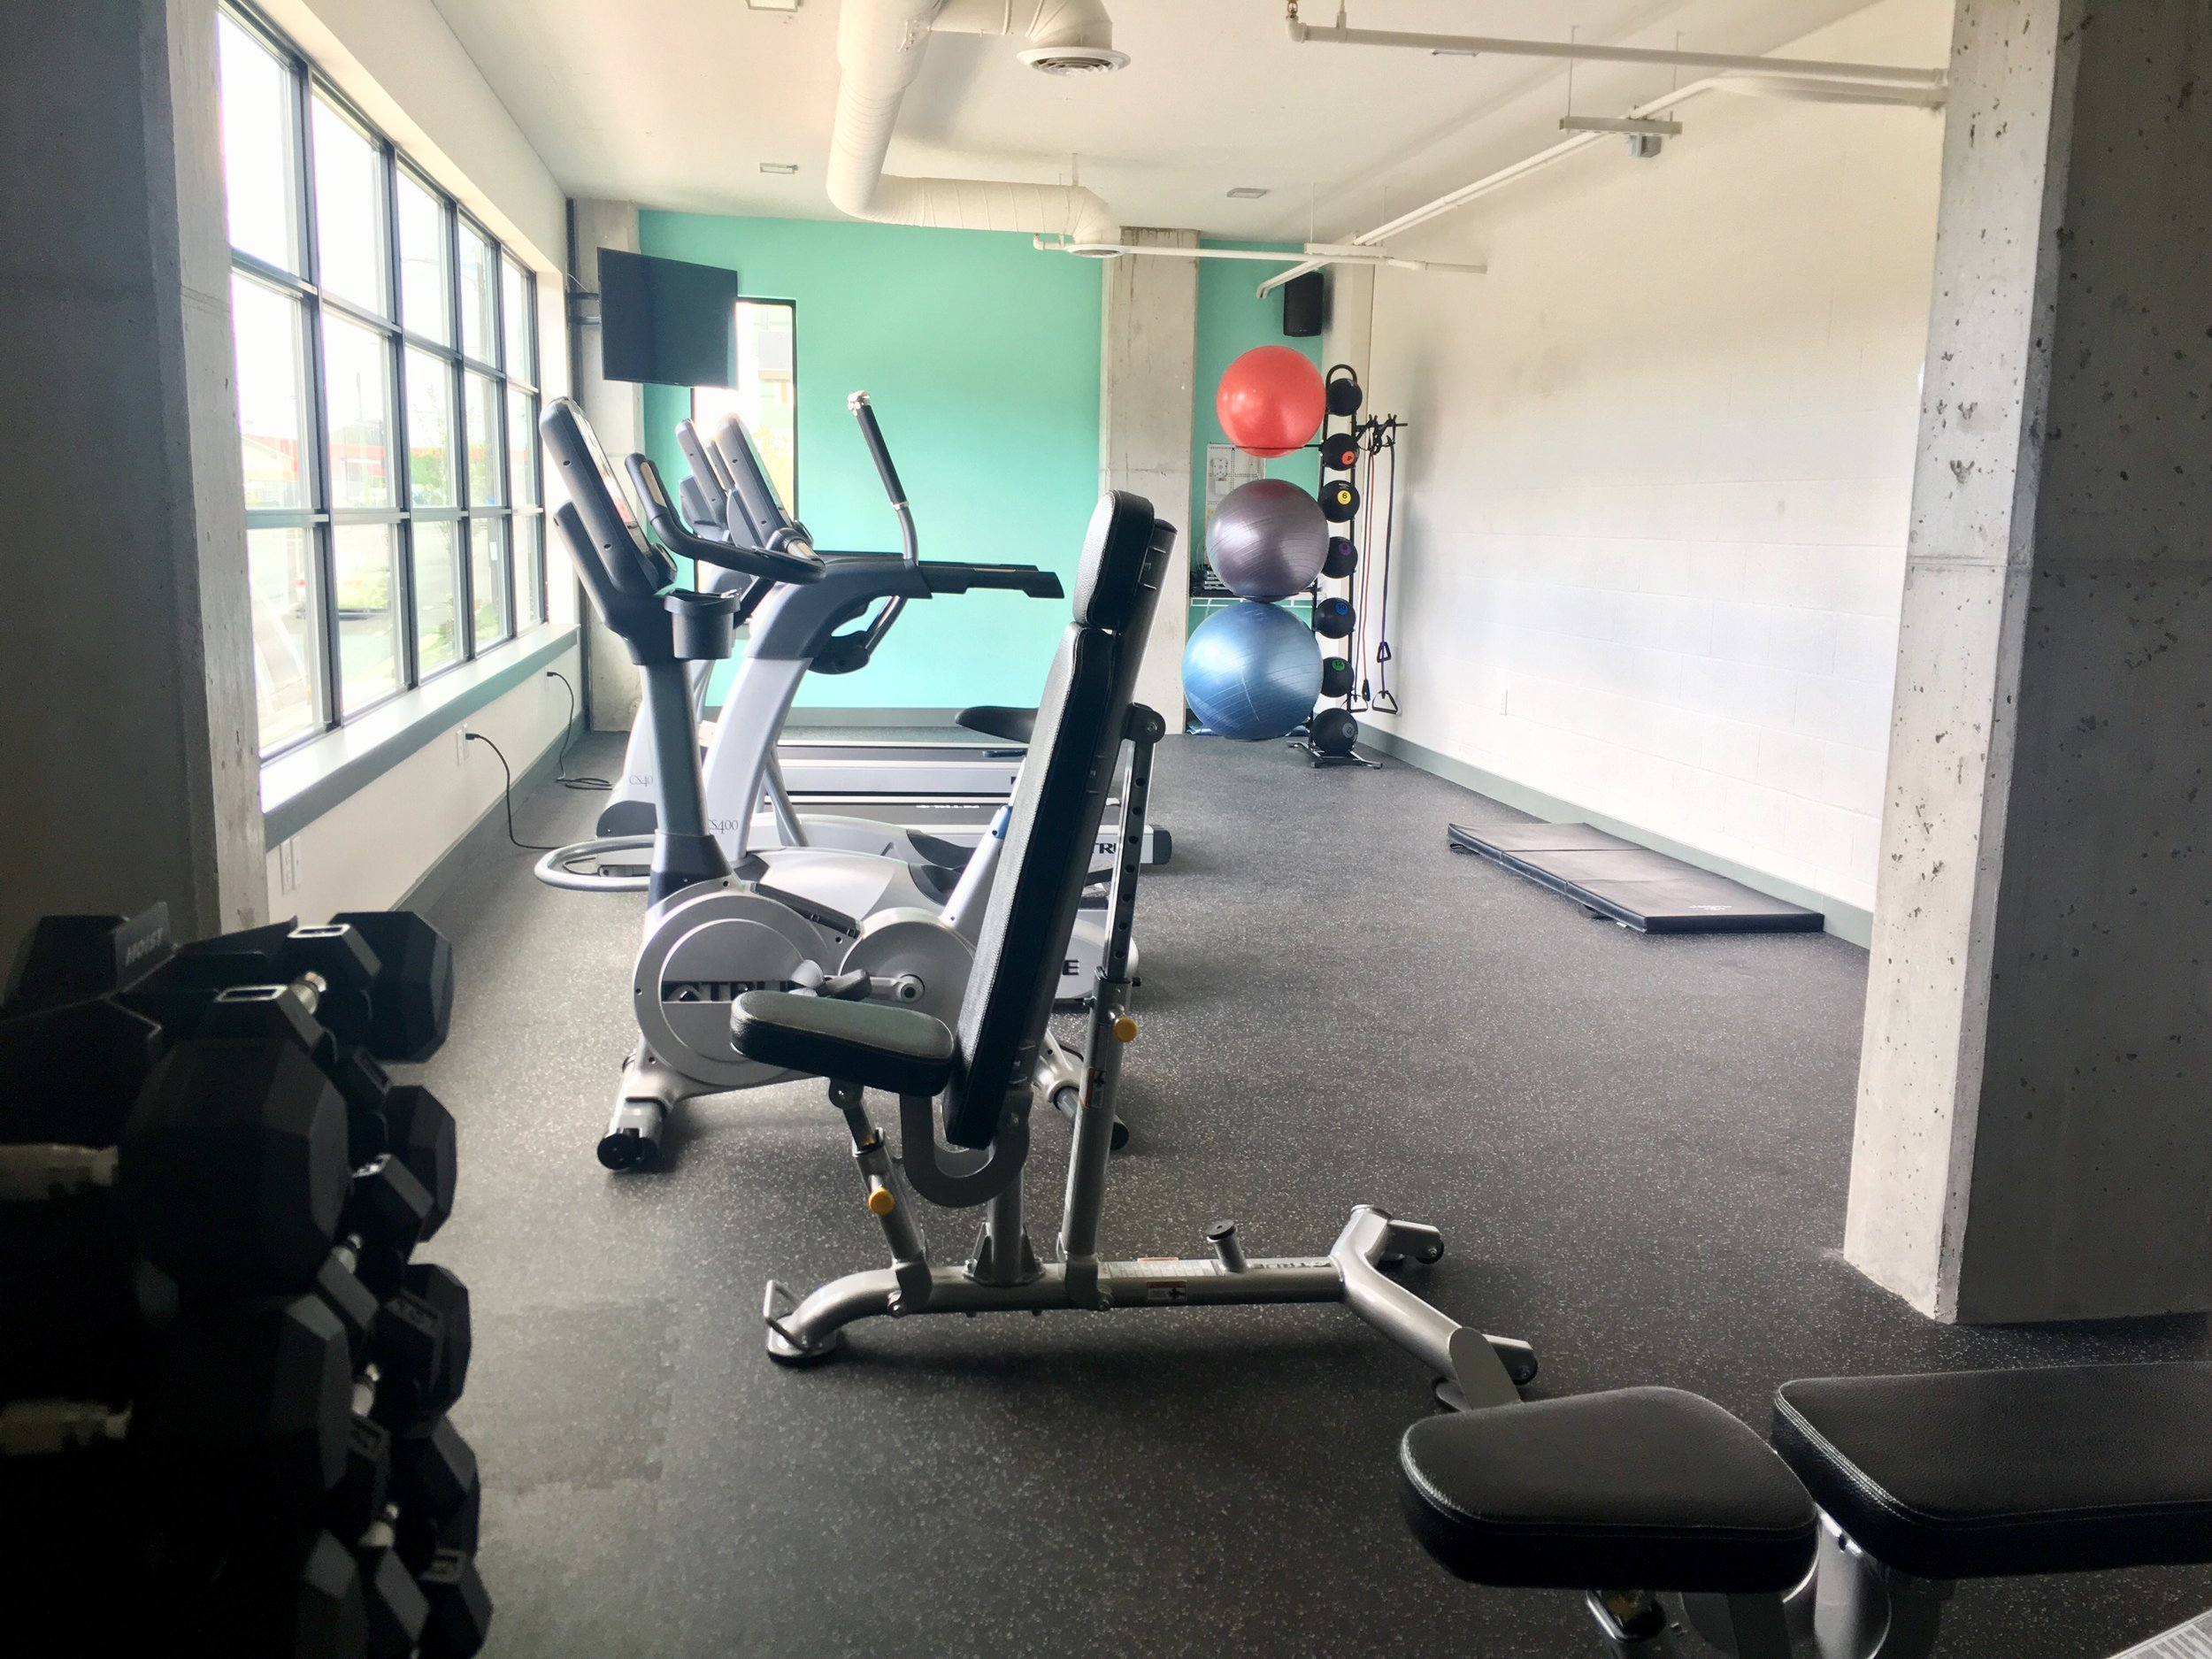 convenient fitness - The Chelsea's fitness room is designed for residents who want to stay in shape, but also need the convenience of a quick and close workout location. The space is full of natural light and offers an array of new equipment. You can have your heart rate up and be ready for work or school before you can say